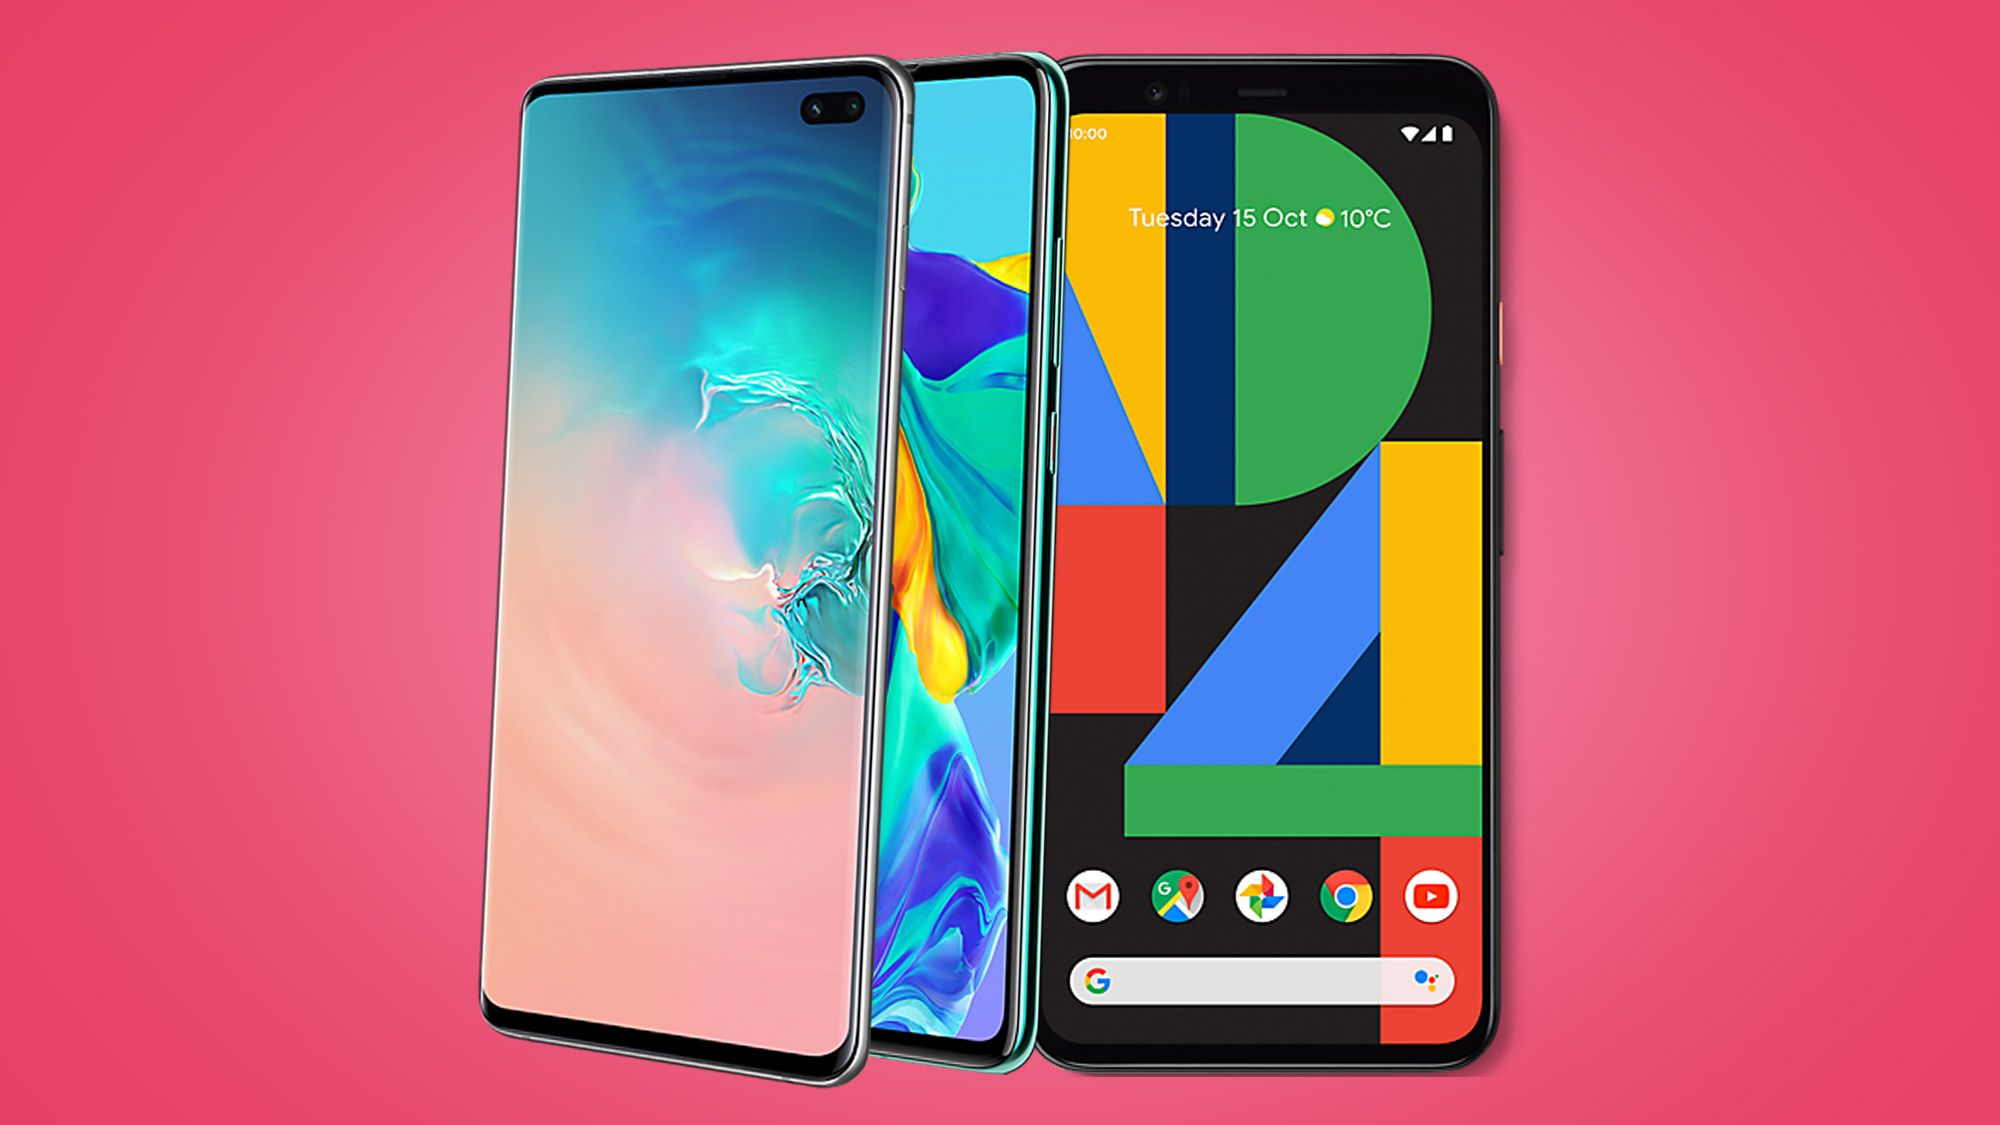 Christmas Cell Phone Deals 2020 Quick   today marks final delivery for most Christmas mobile phone